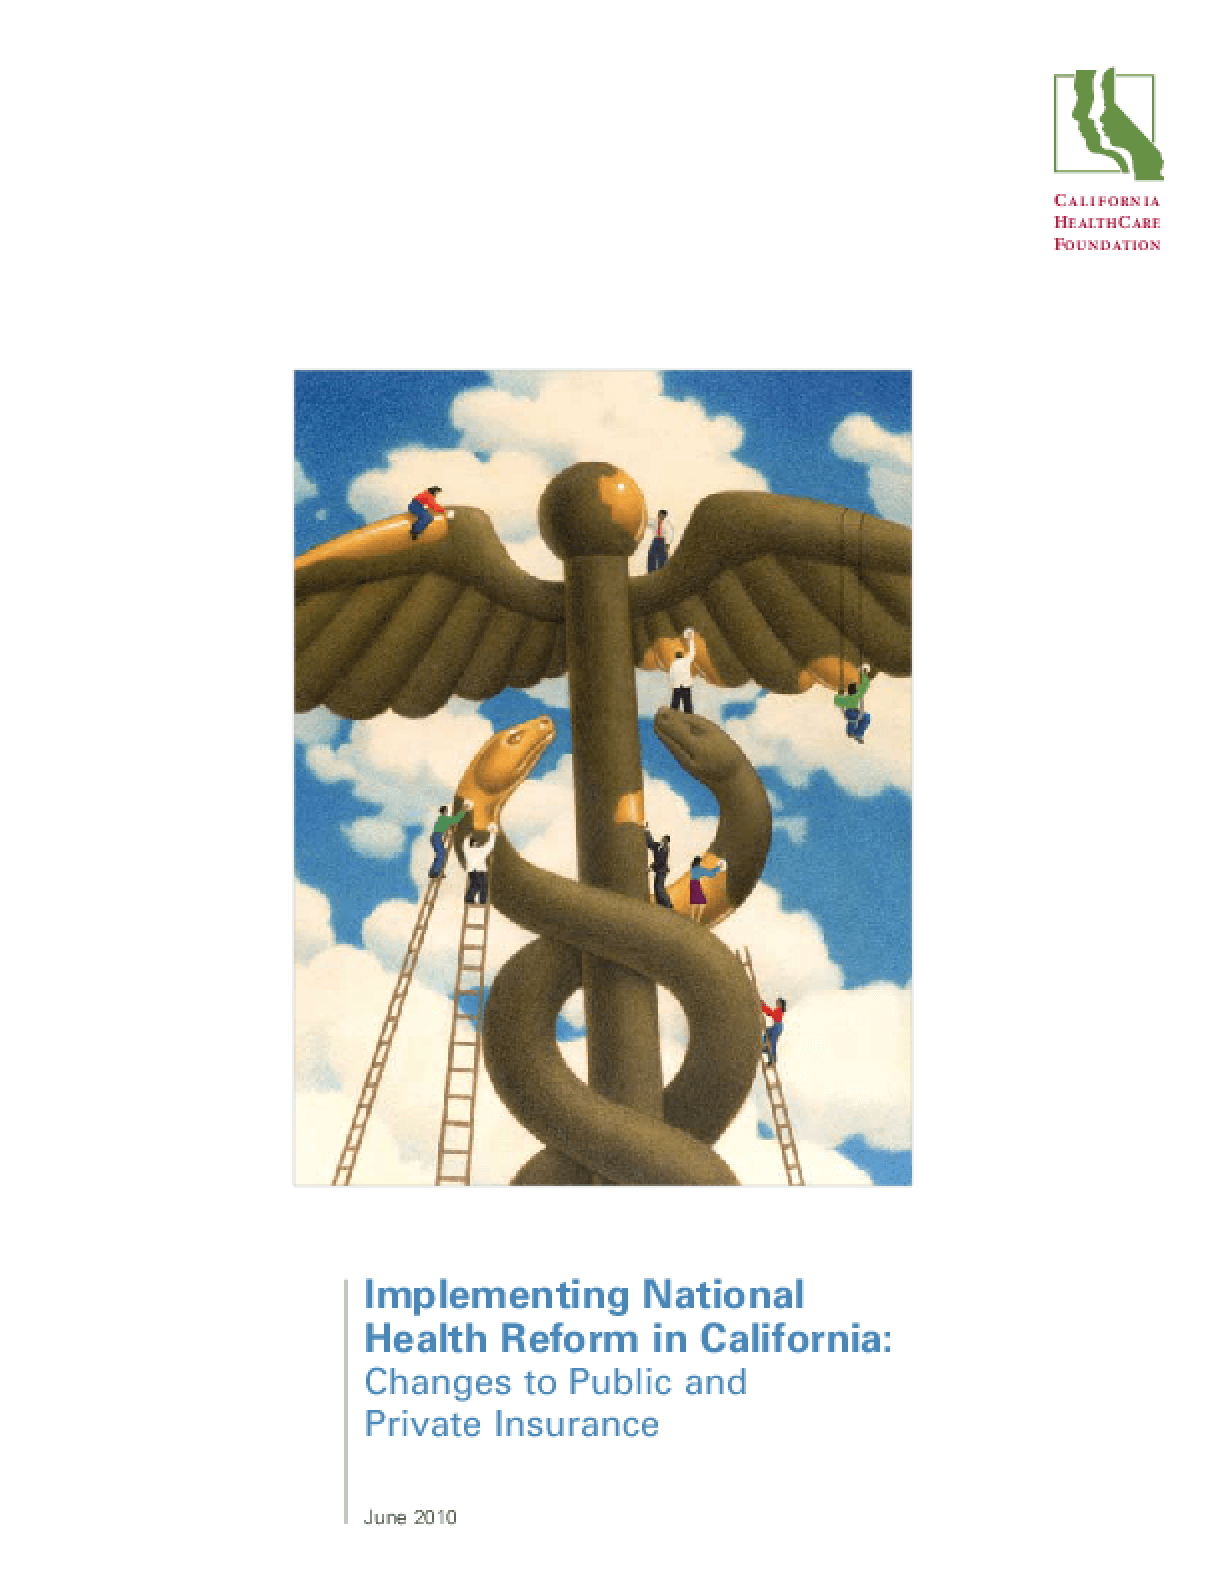 Implementing National Health Reform in California: Changes to Public and Private Insurance